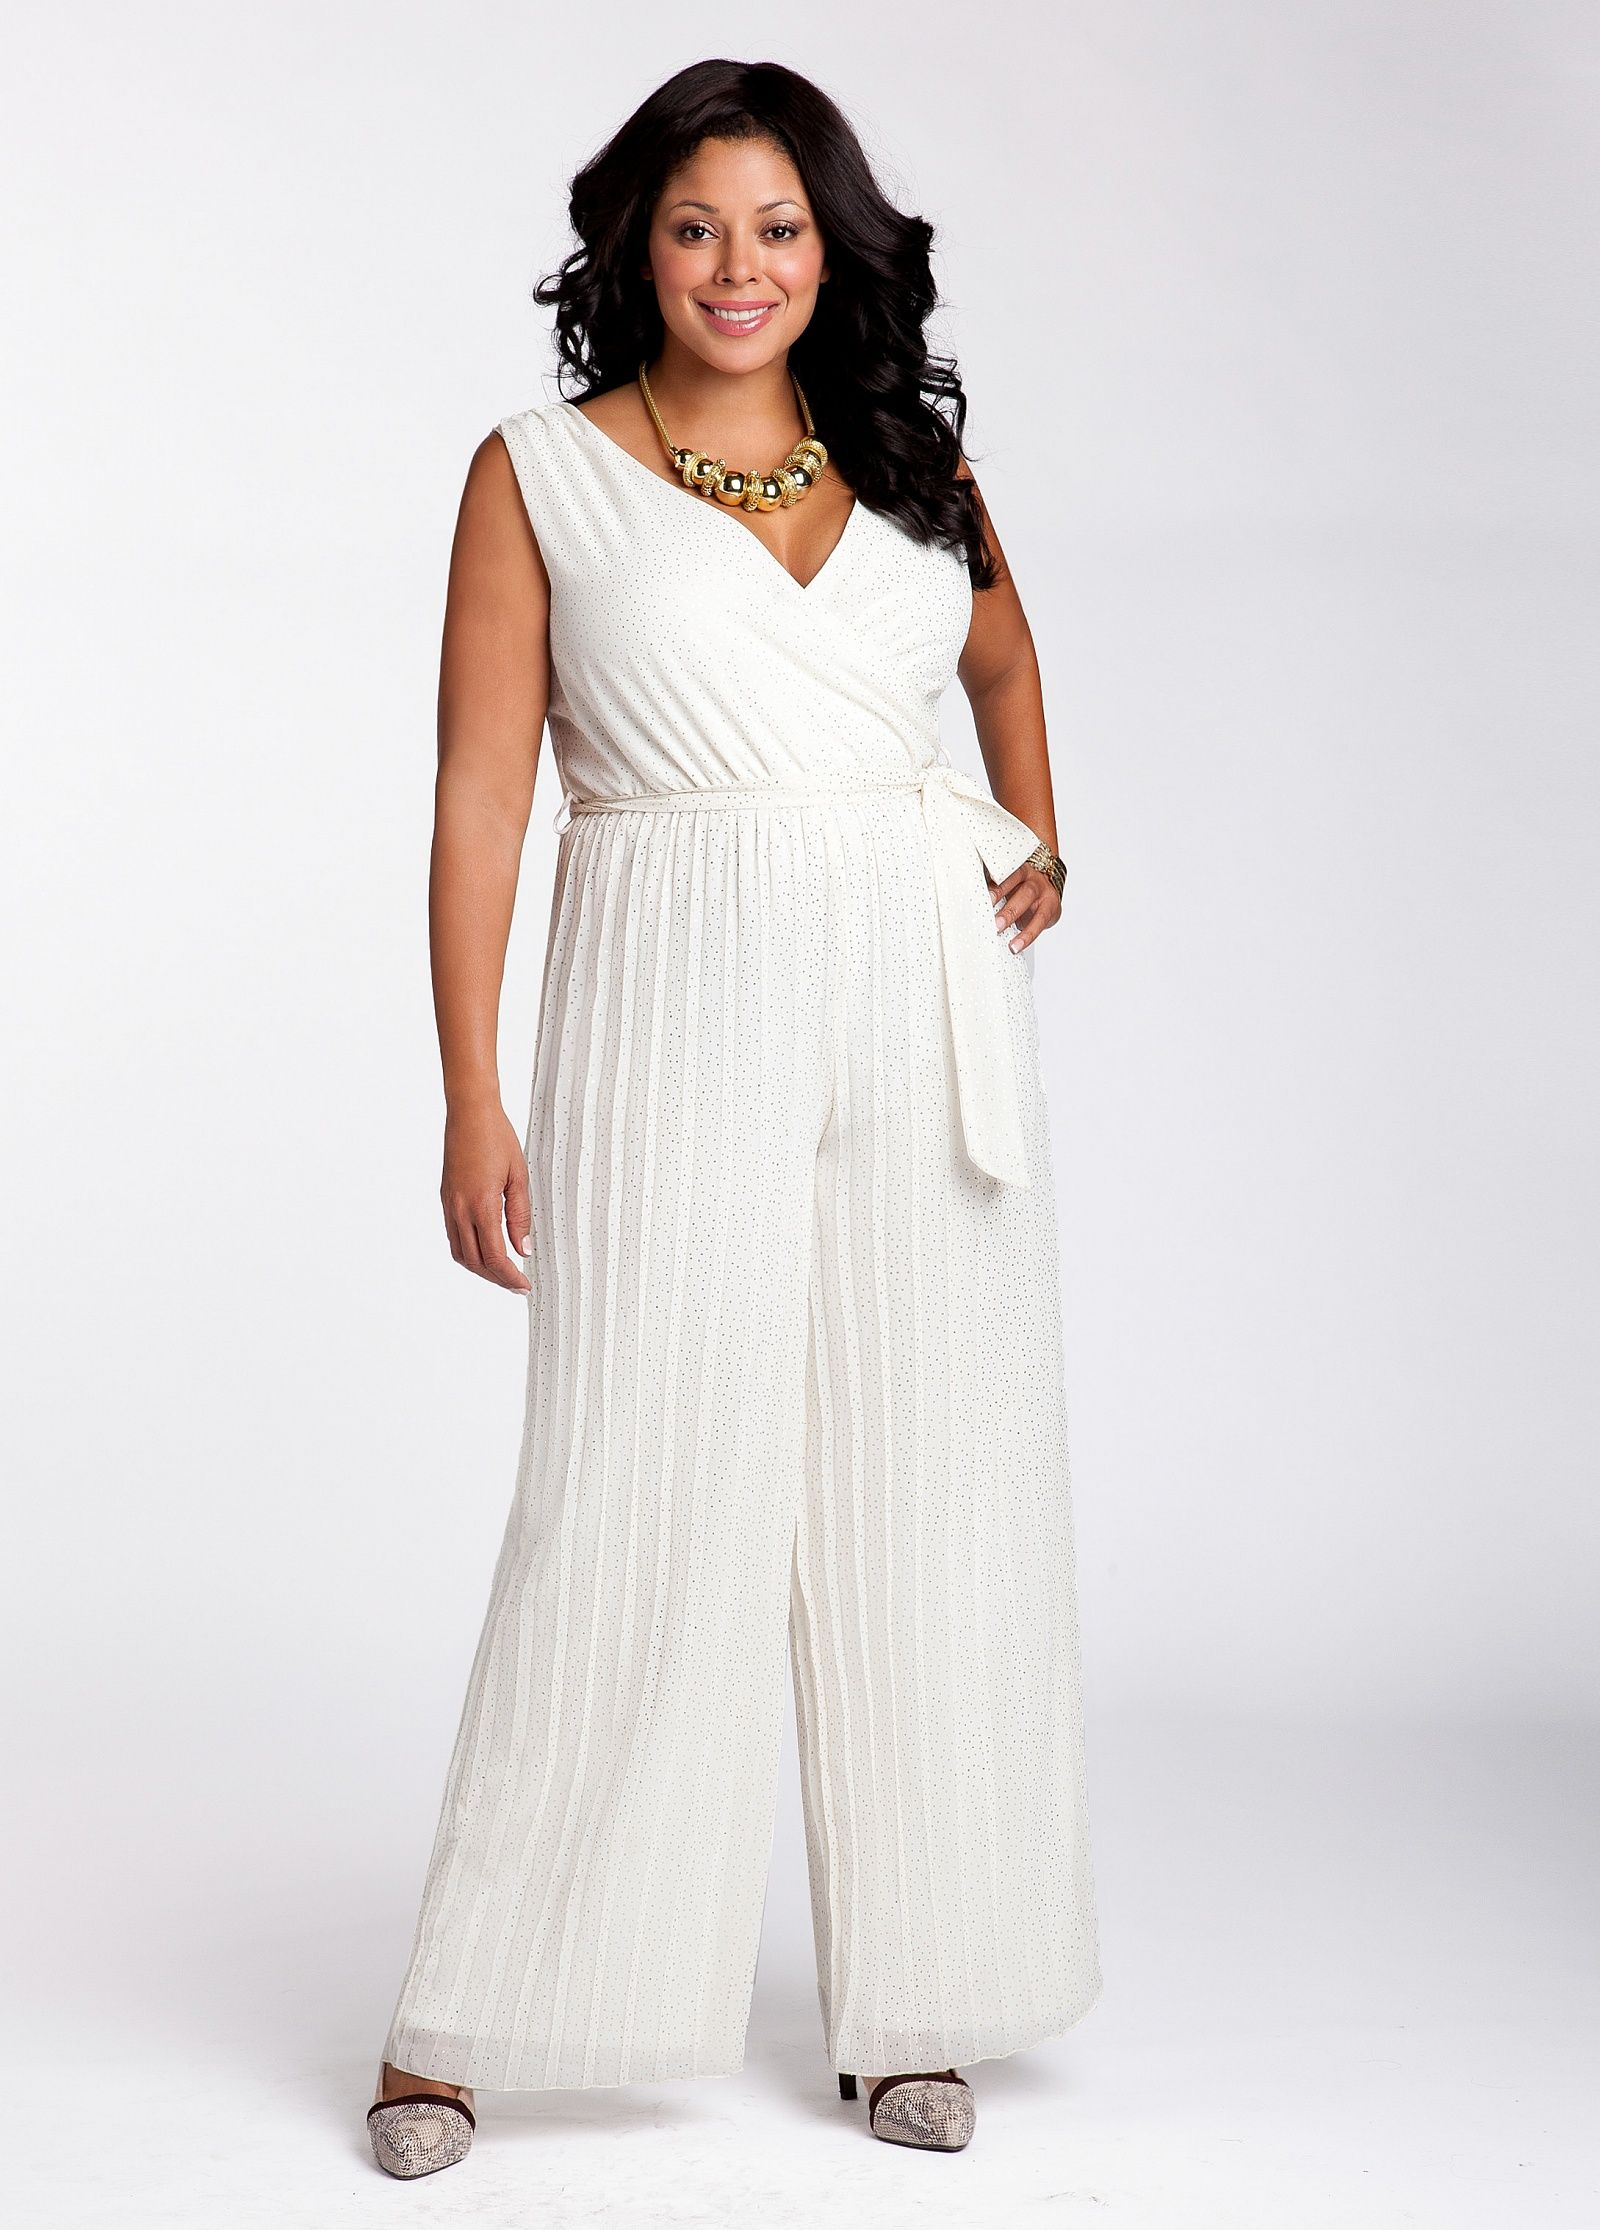 70a2a5cbf354c  41.65 - Plus Size Ashley Stewart  Glitter Detail Pleated Jumpsuit ...